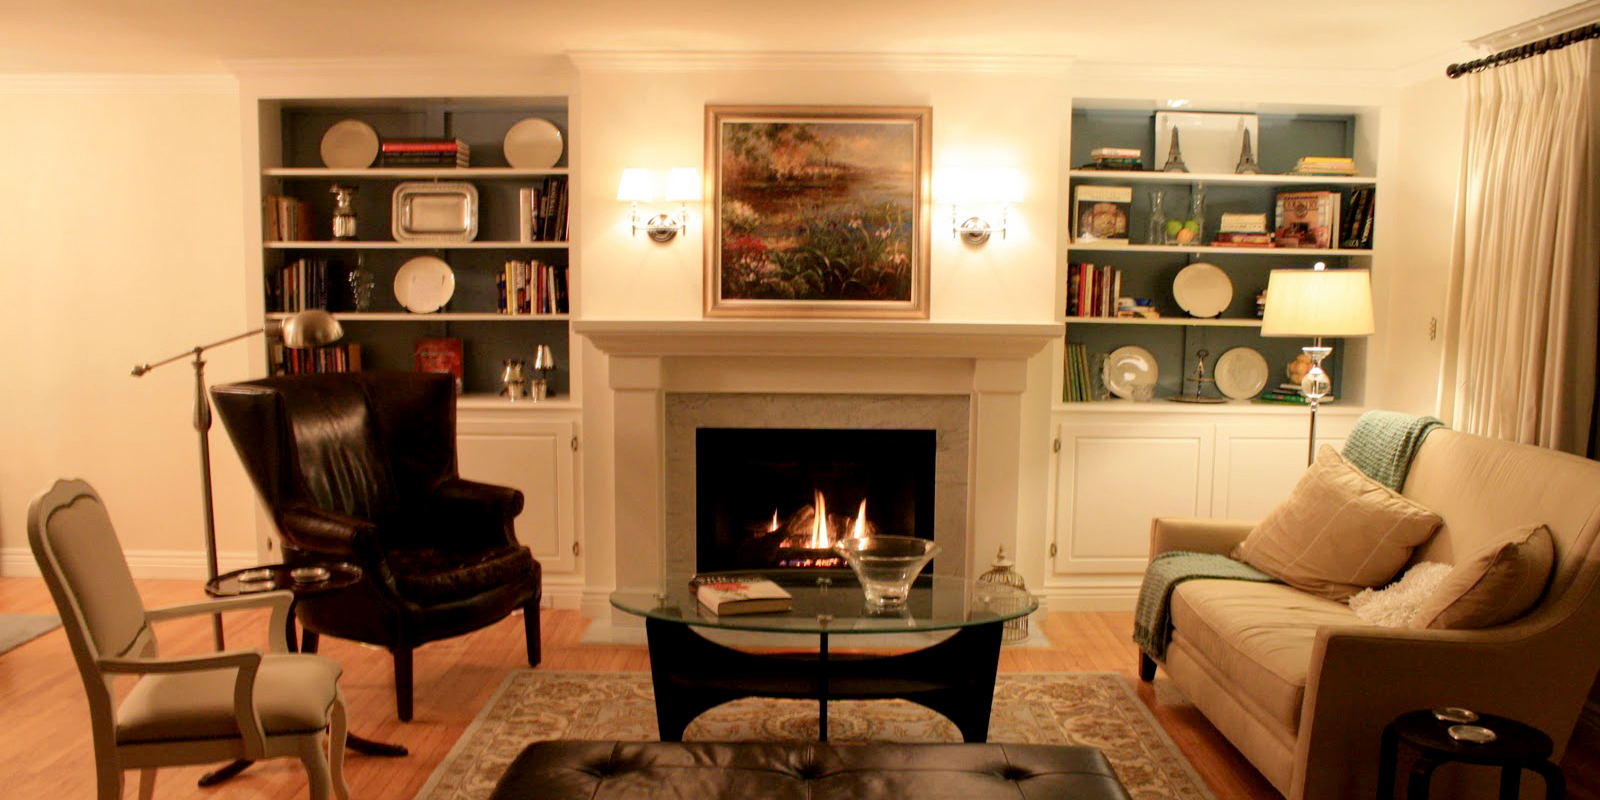 Living Room Remodel, Adding a Fireplace and Built in Bookshelves (15) featured image